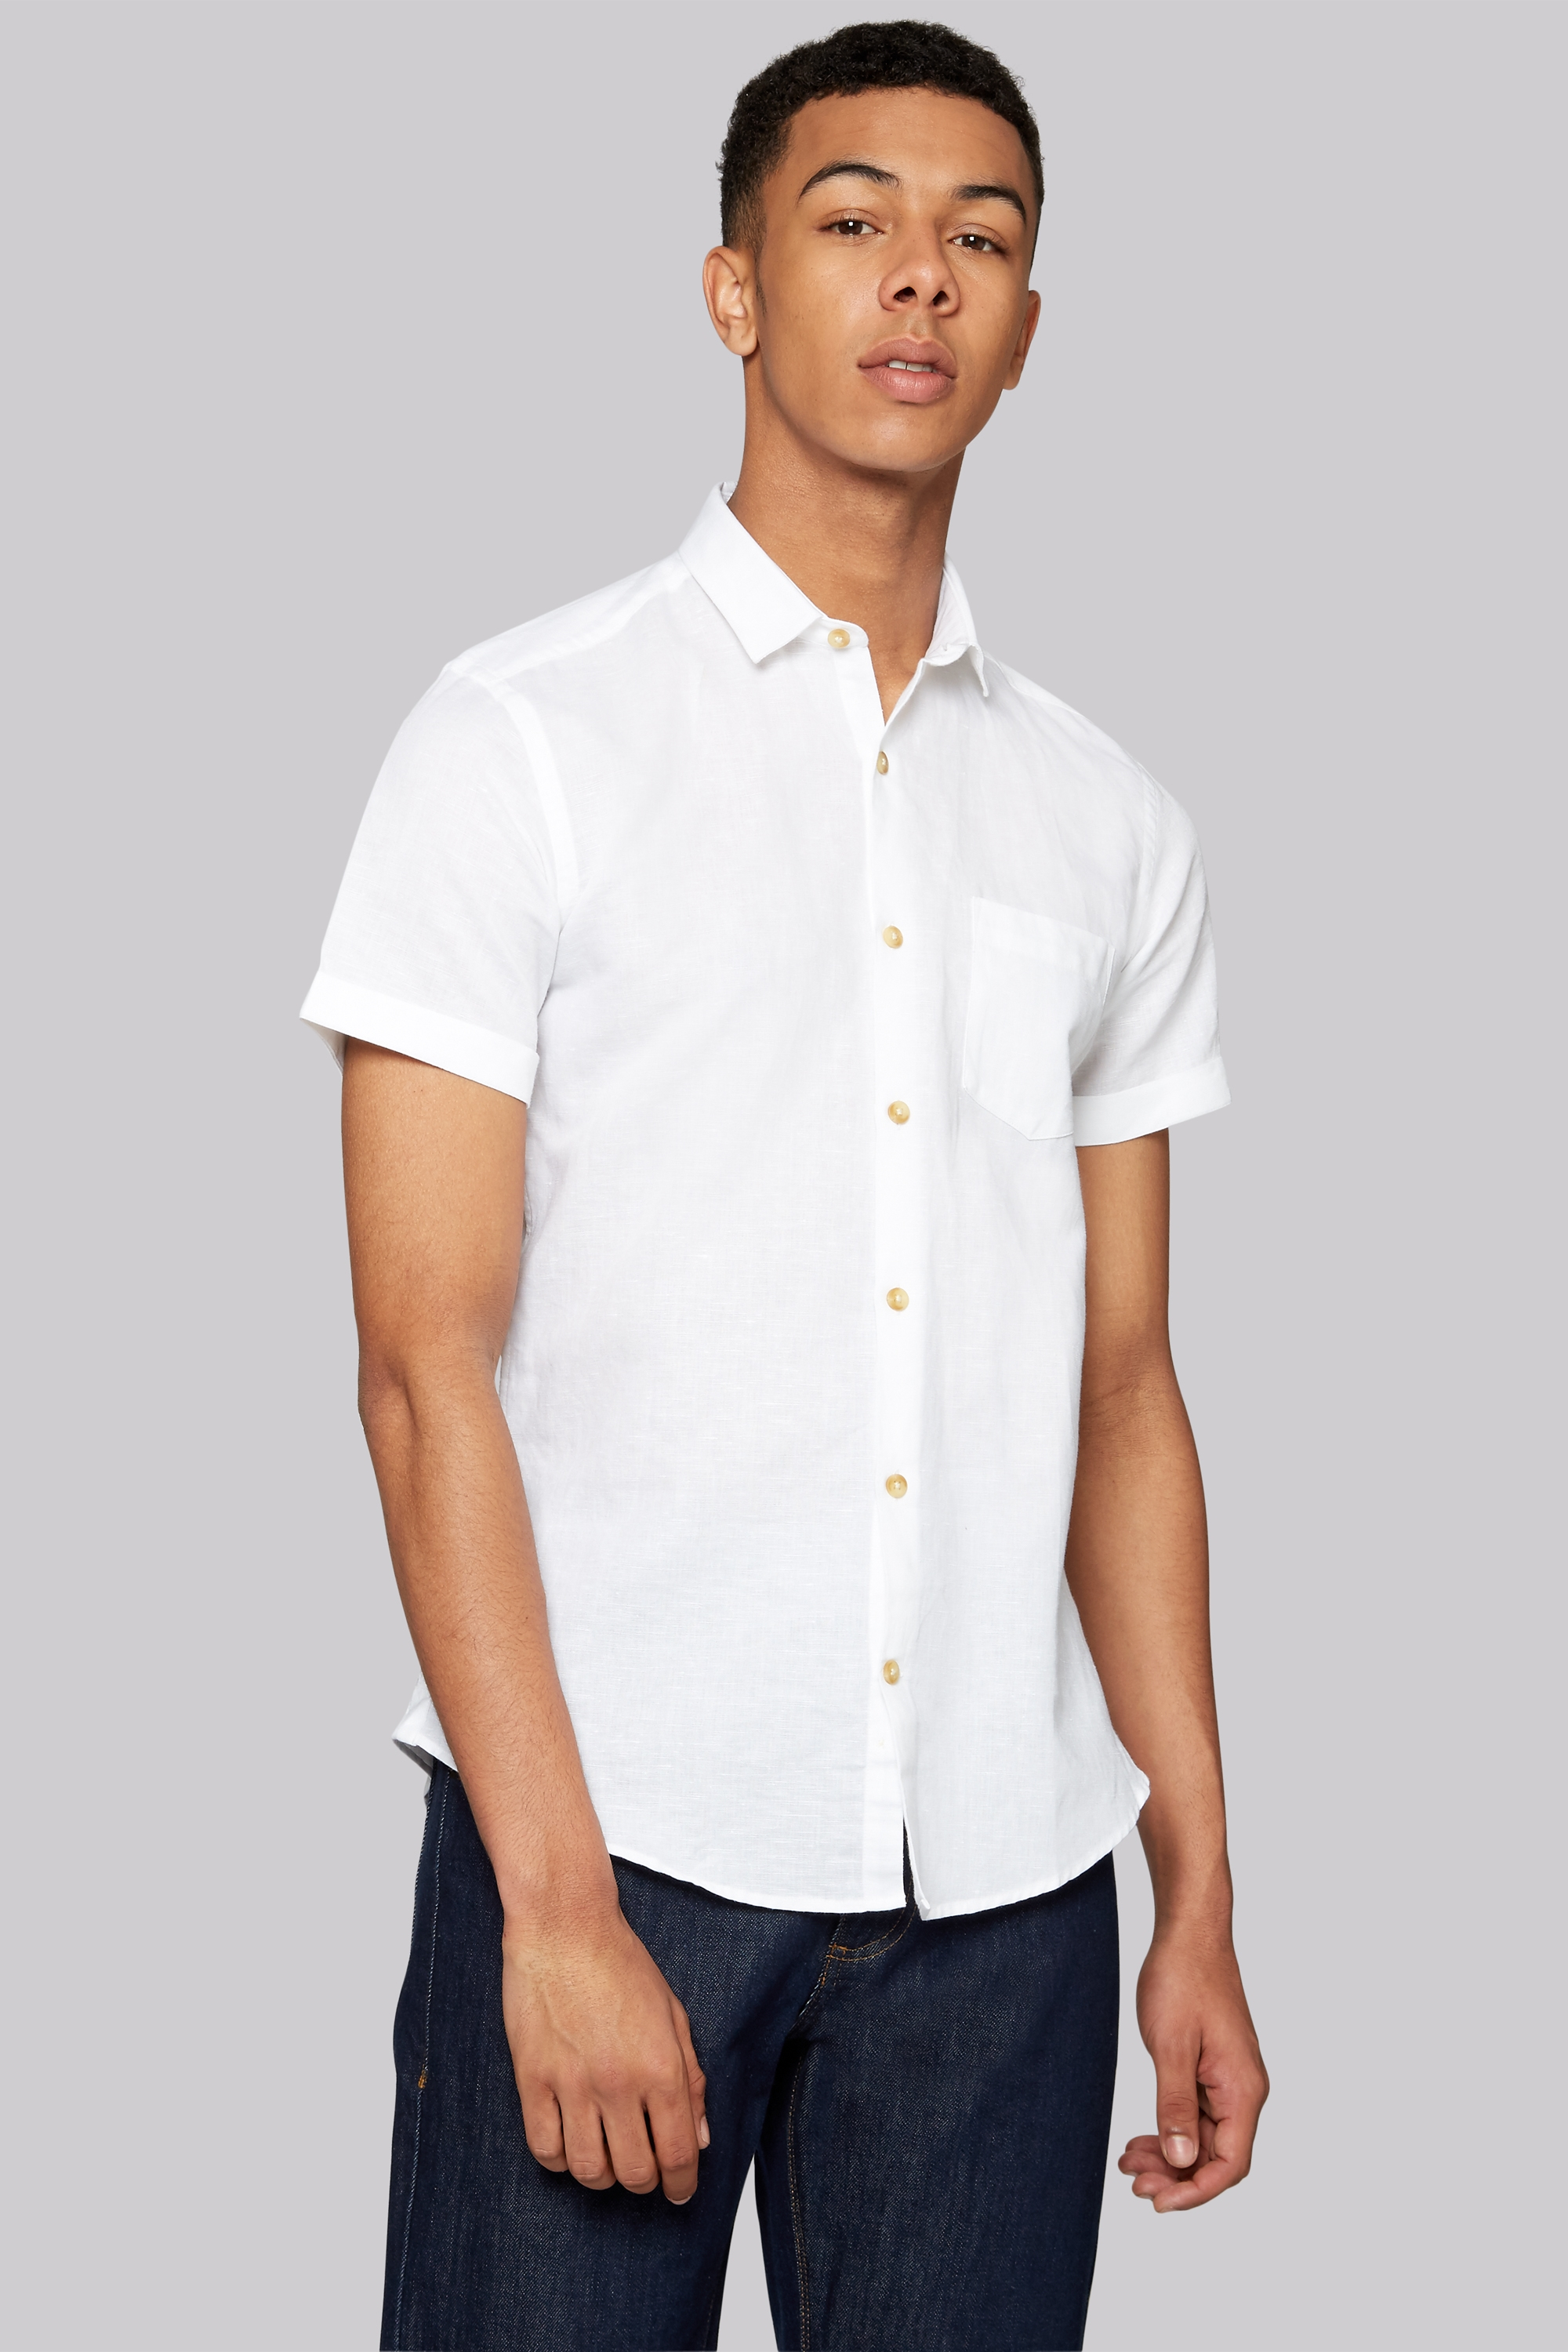 Find great deals on eBay for mens short sleeve casual dress shirts. Shop with confidence.